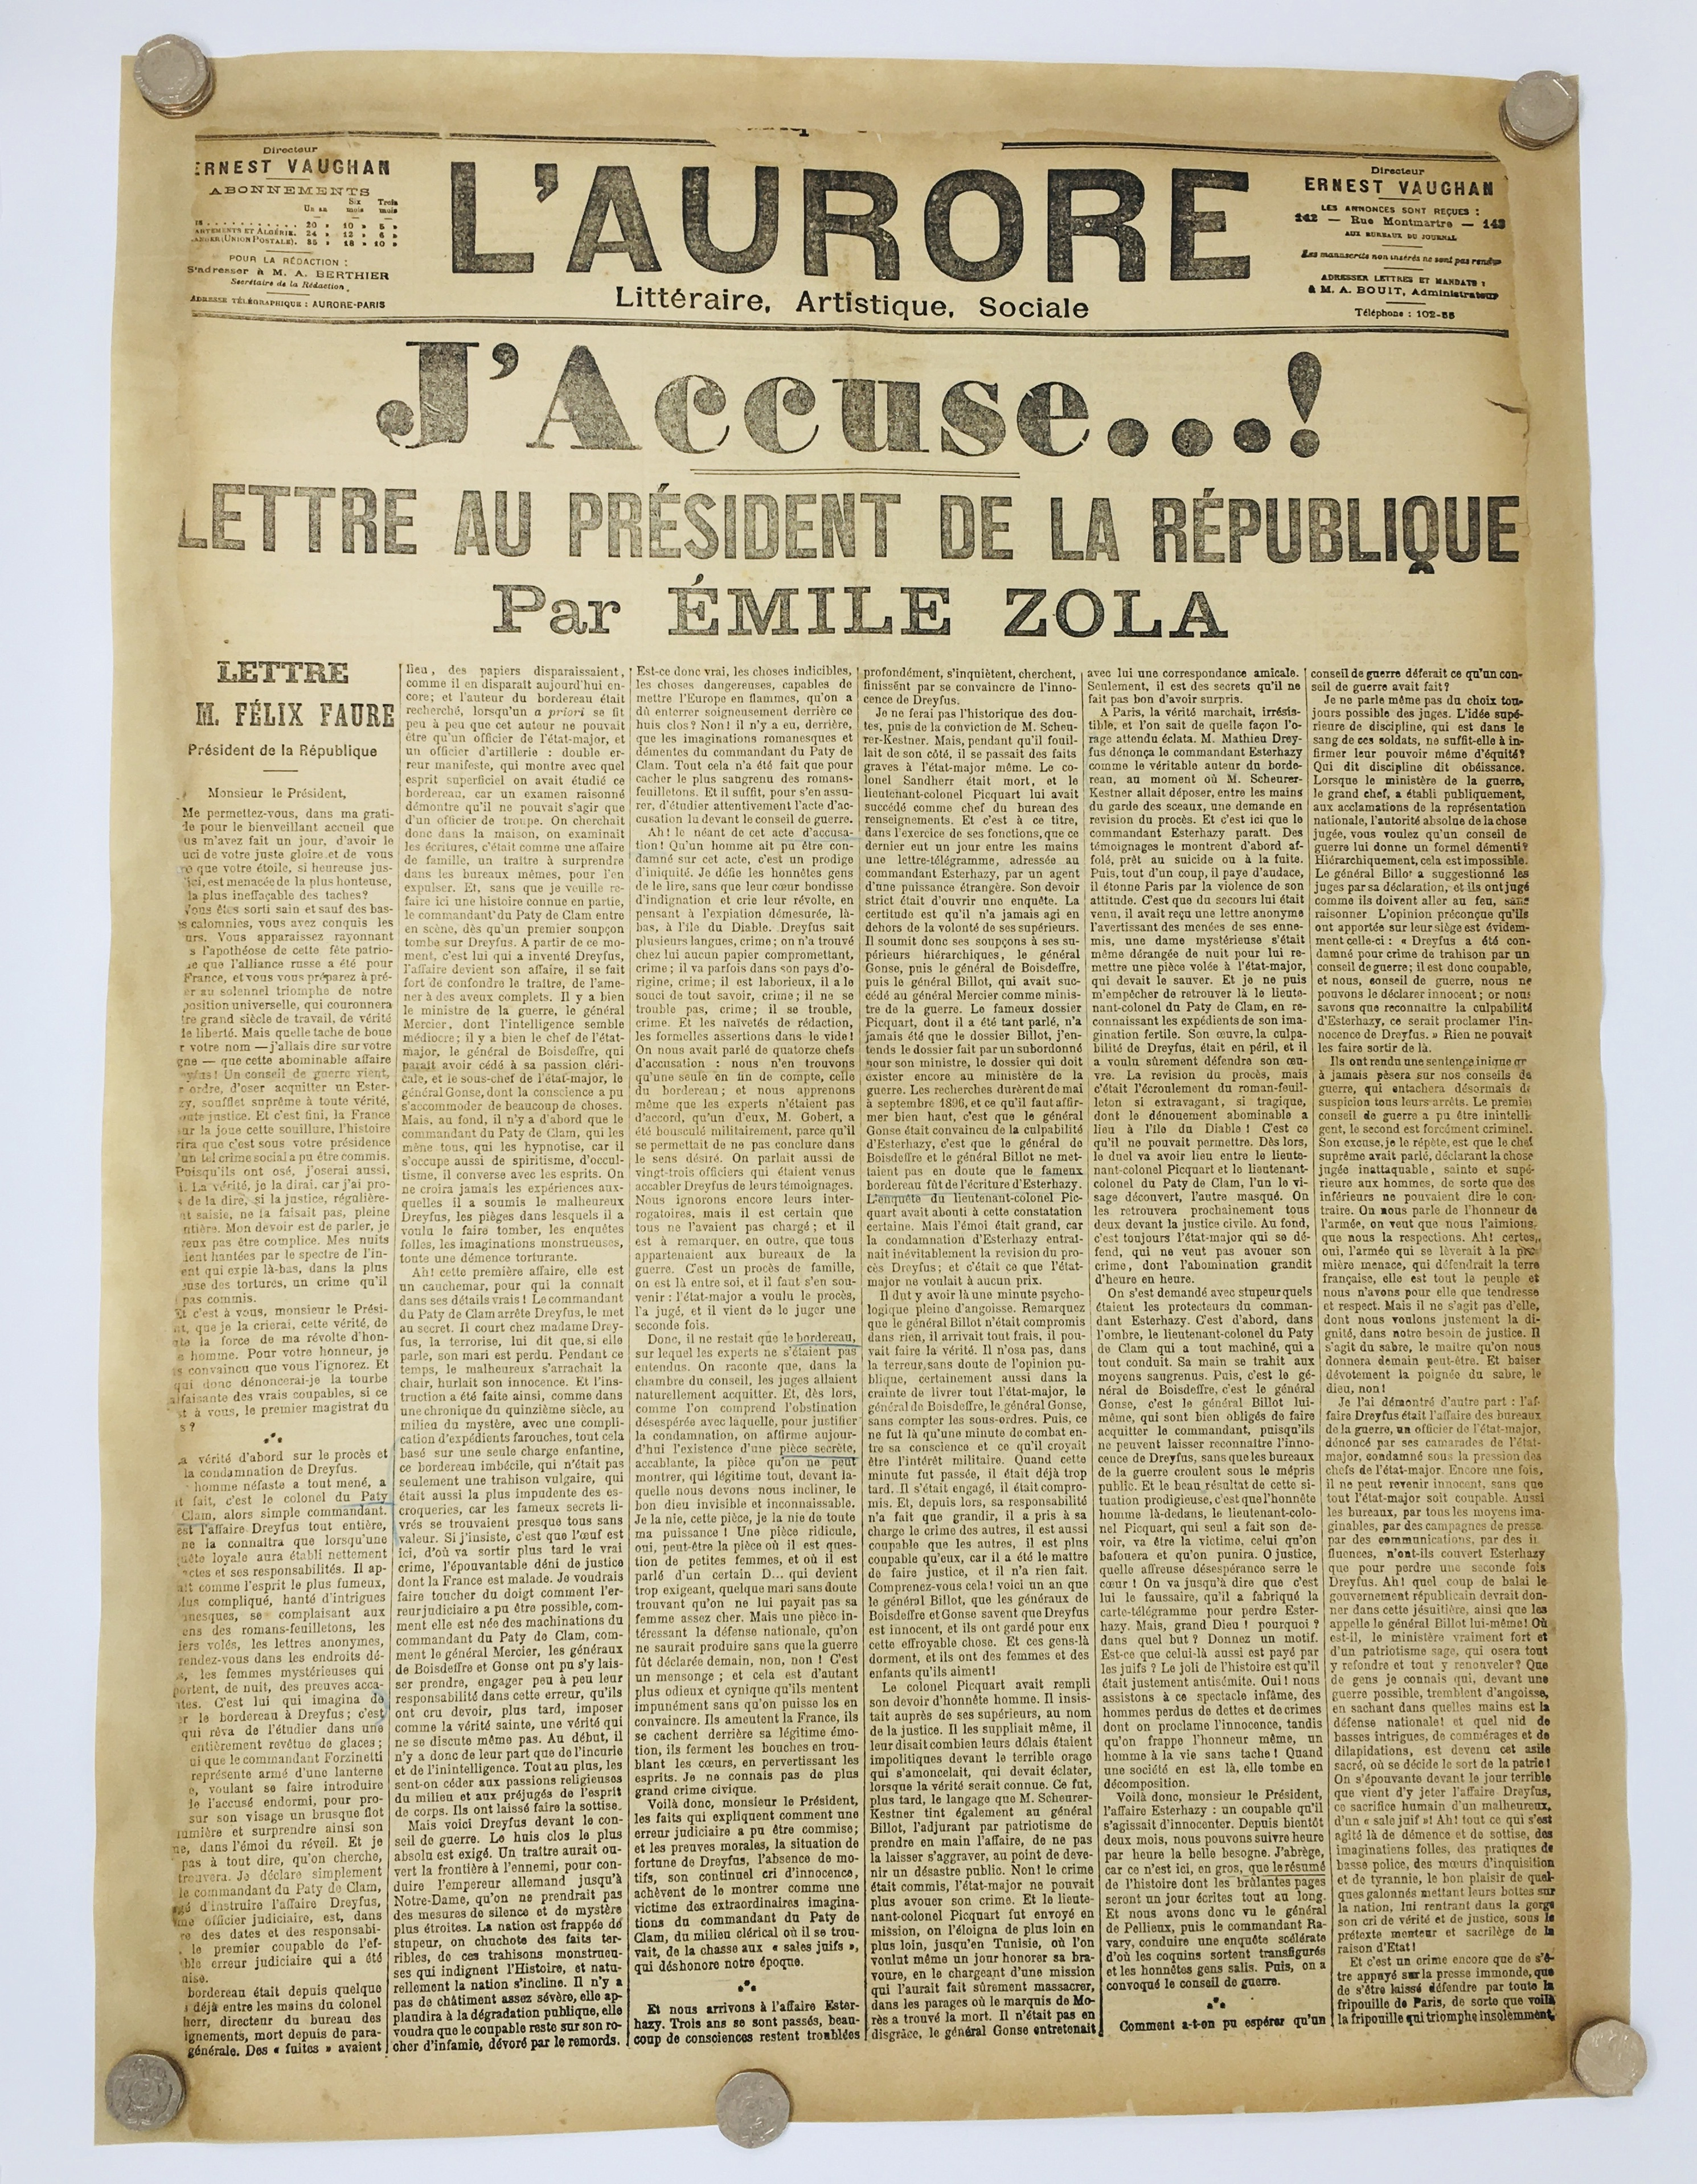 J'Accuse Newspaper, Emile Zola Quote, Signed Dreyfus Portrait, Rare Trial Drawings & Schwartzkoppen - Image 3 of 74